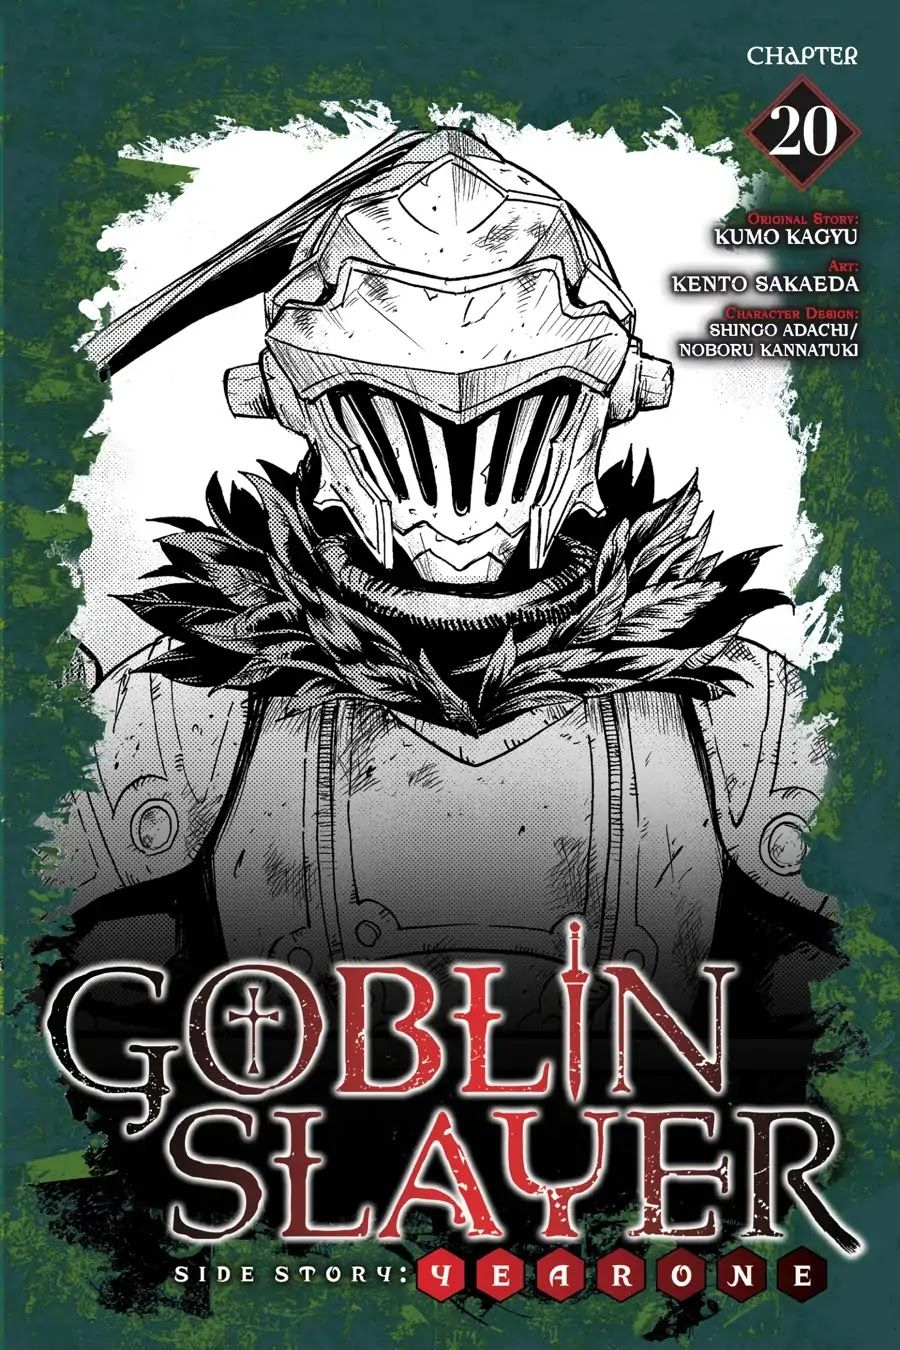 Goblin slayer side story year one chapter 20 page 1